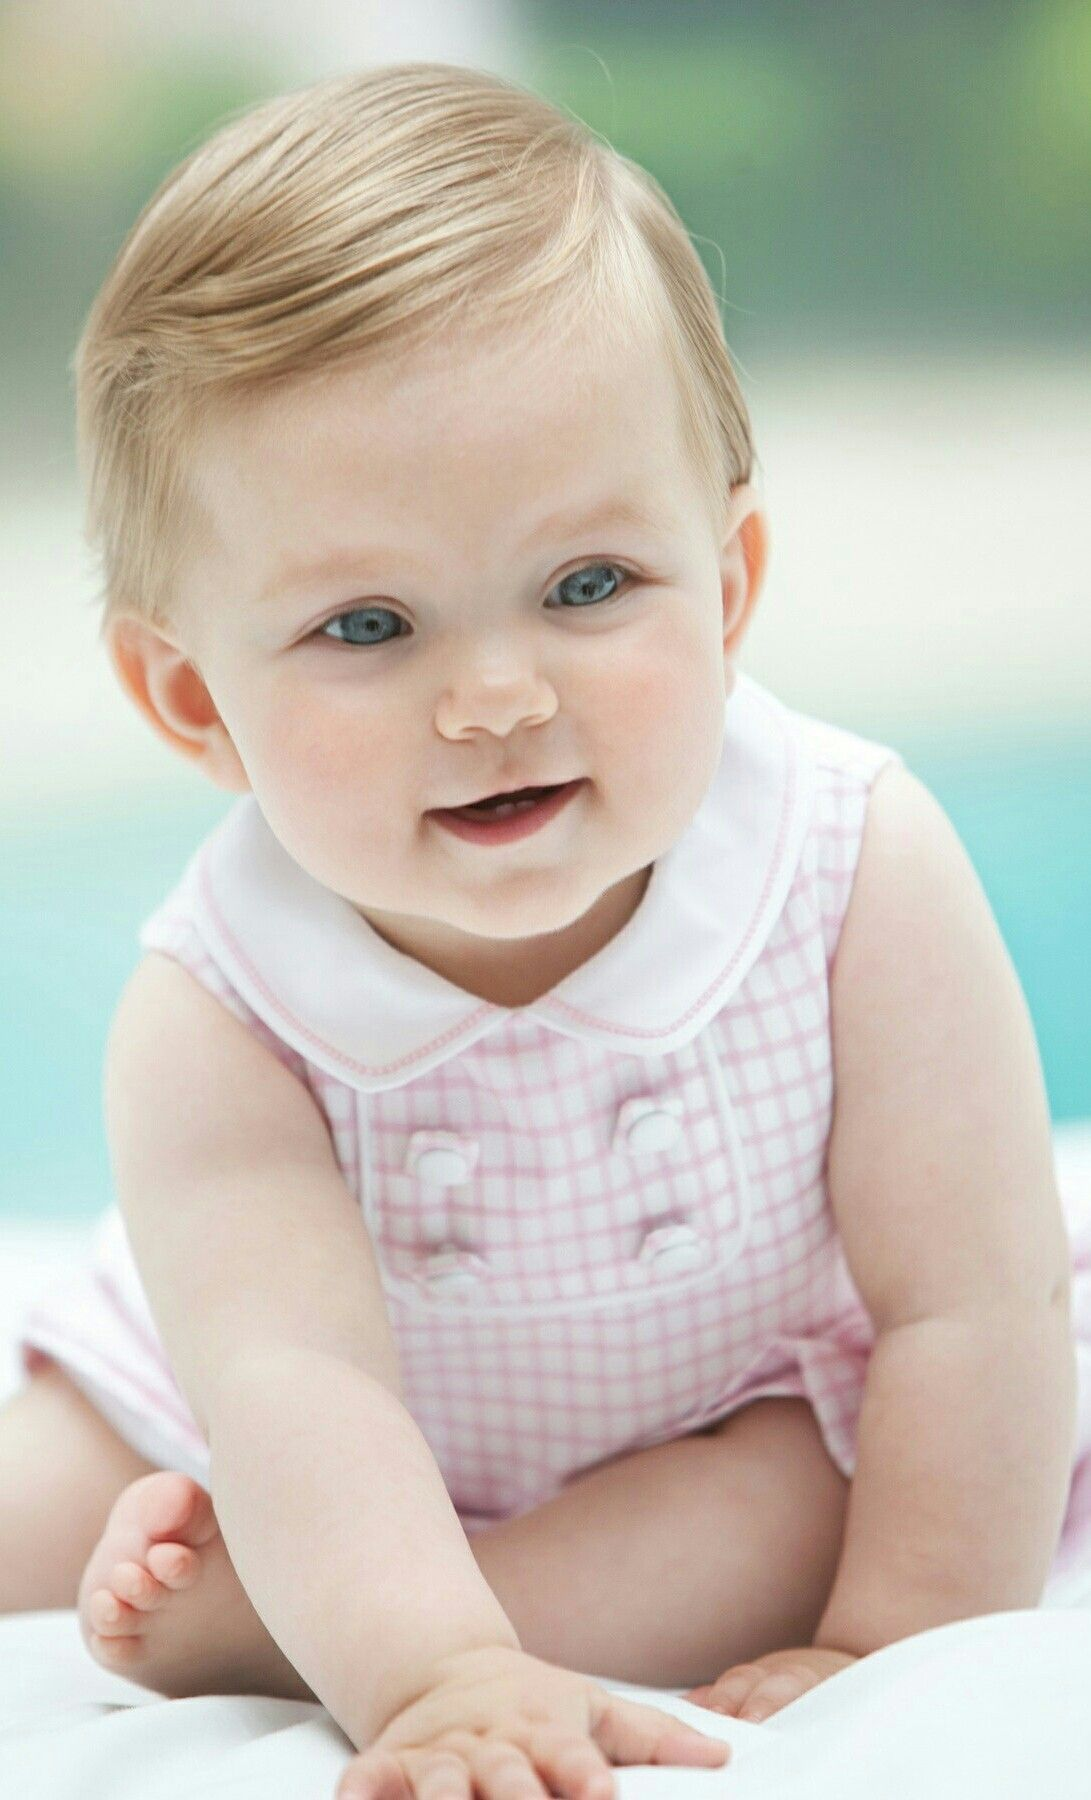 خلفيات اطفال جميلة Cute Kids Pics Twin Baby Girls Cute Baby Boy